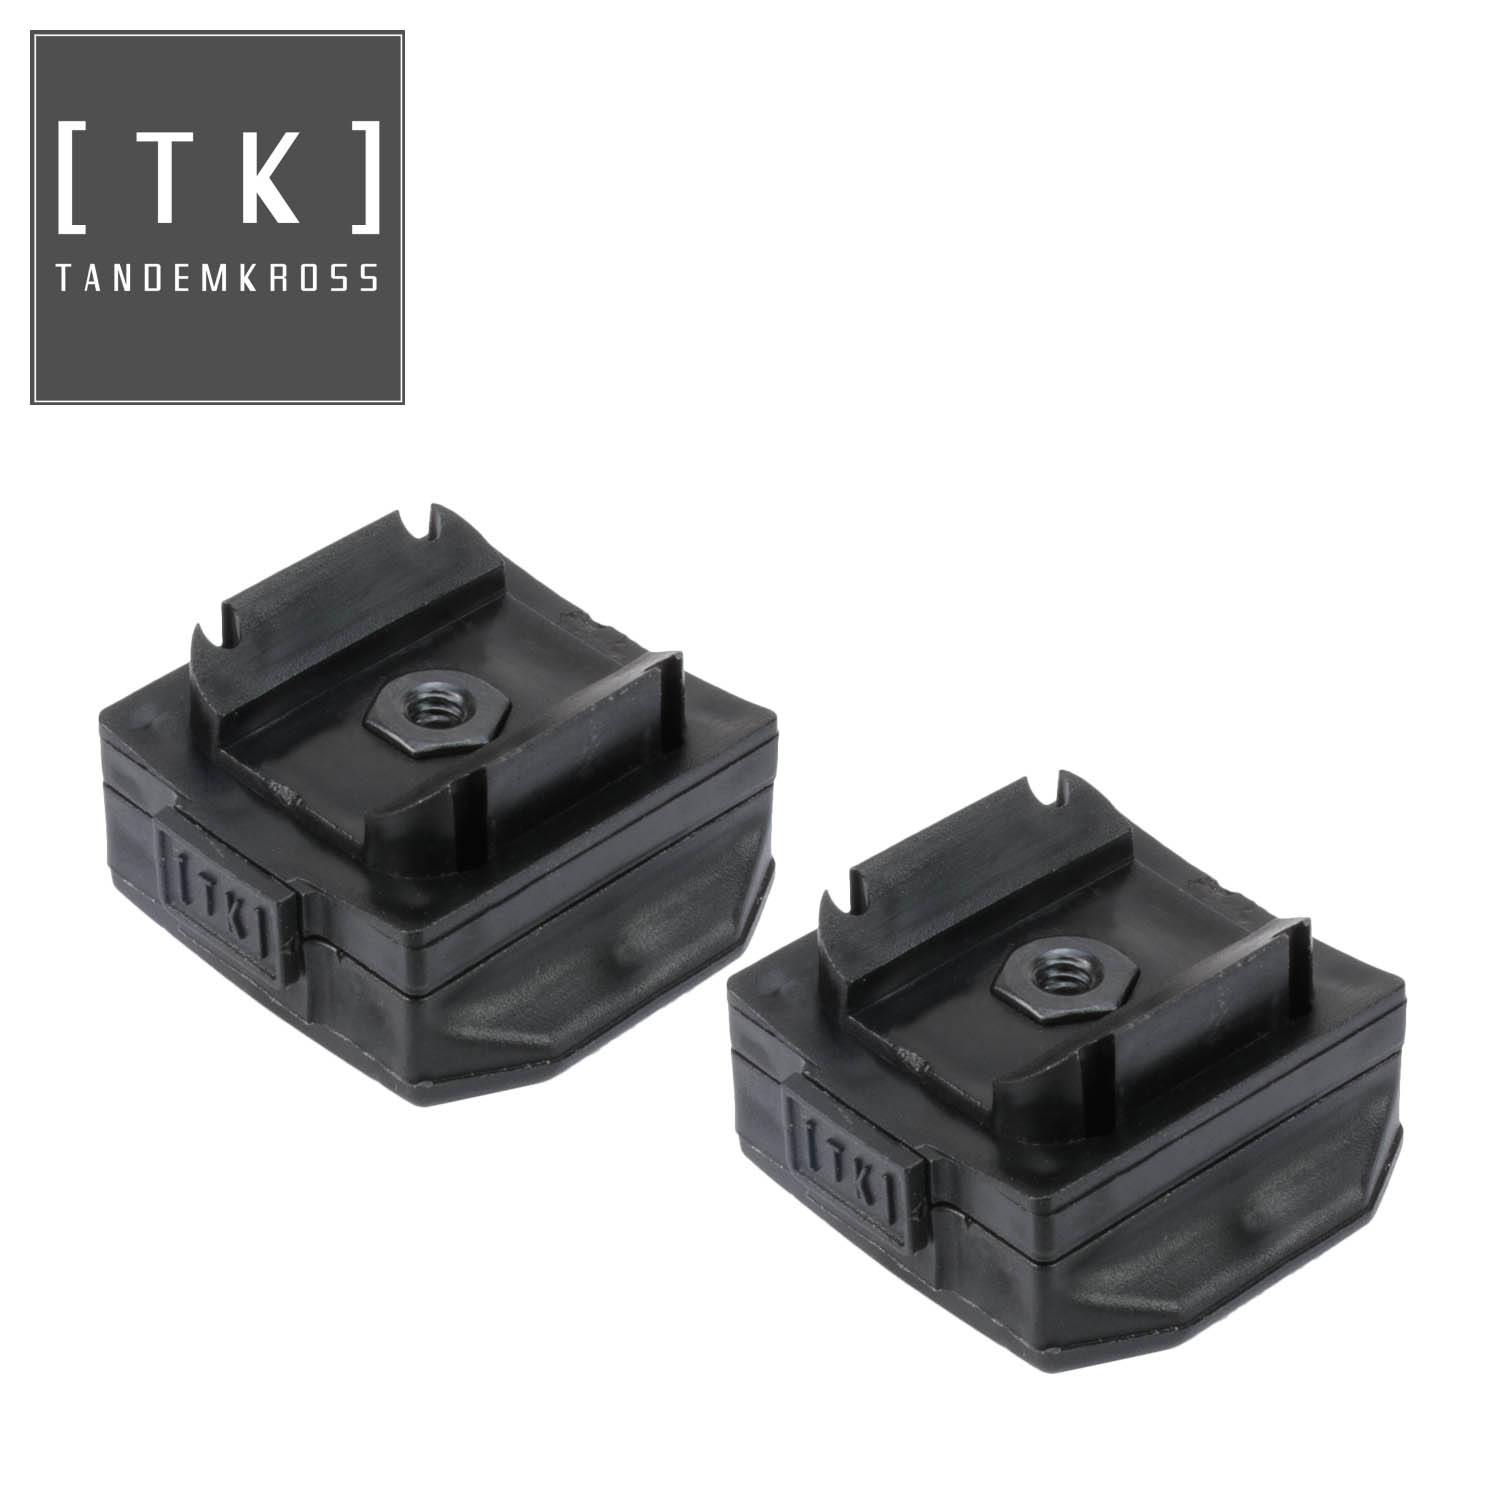 Tandemkross Companion Extended Magazine Bumper, Ruger 10/22, 2 Pack:  Midwest Gun Works